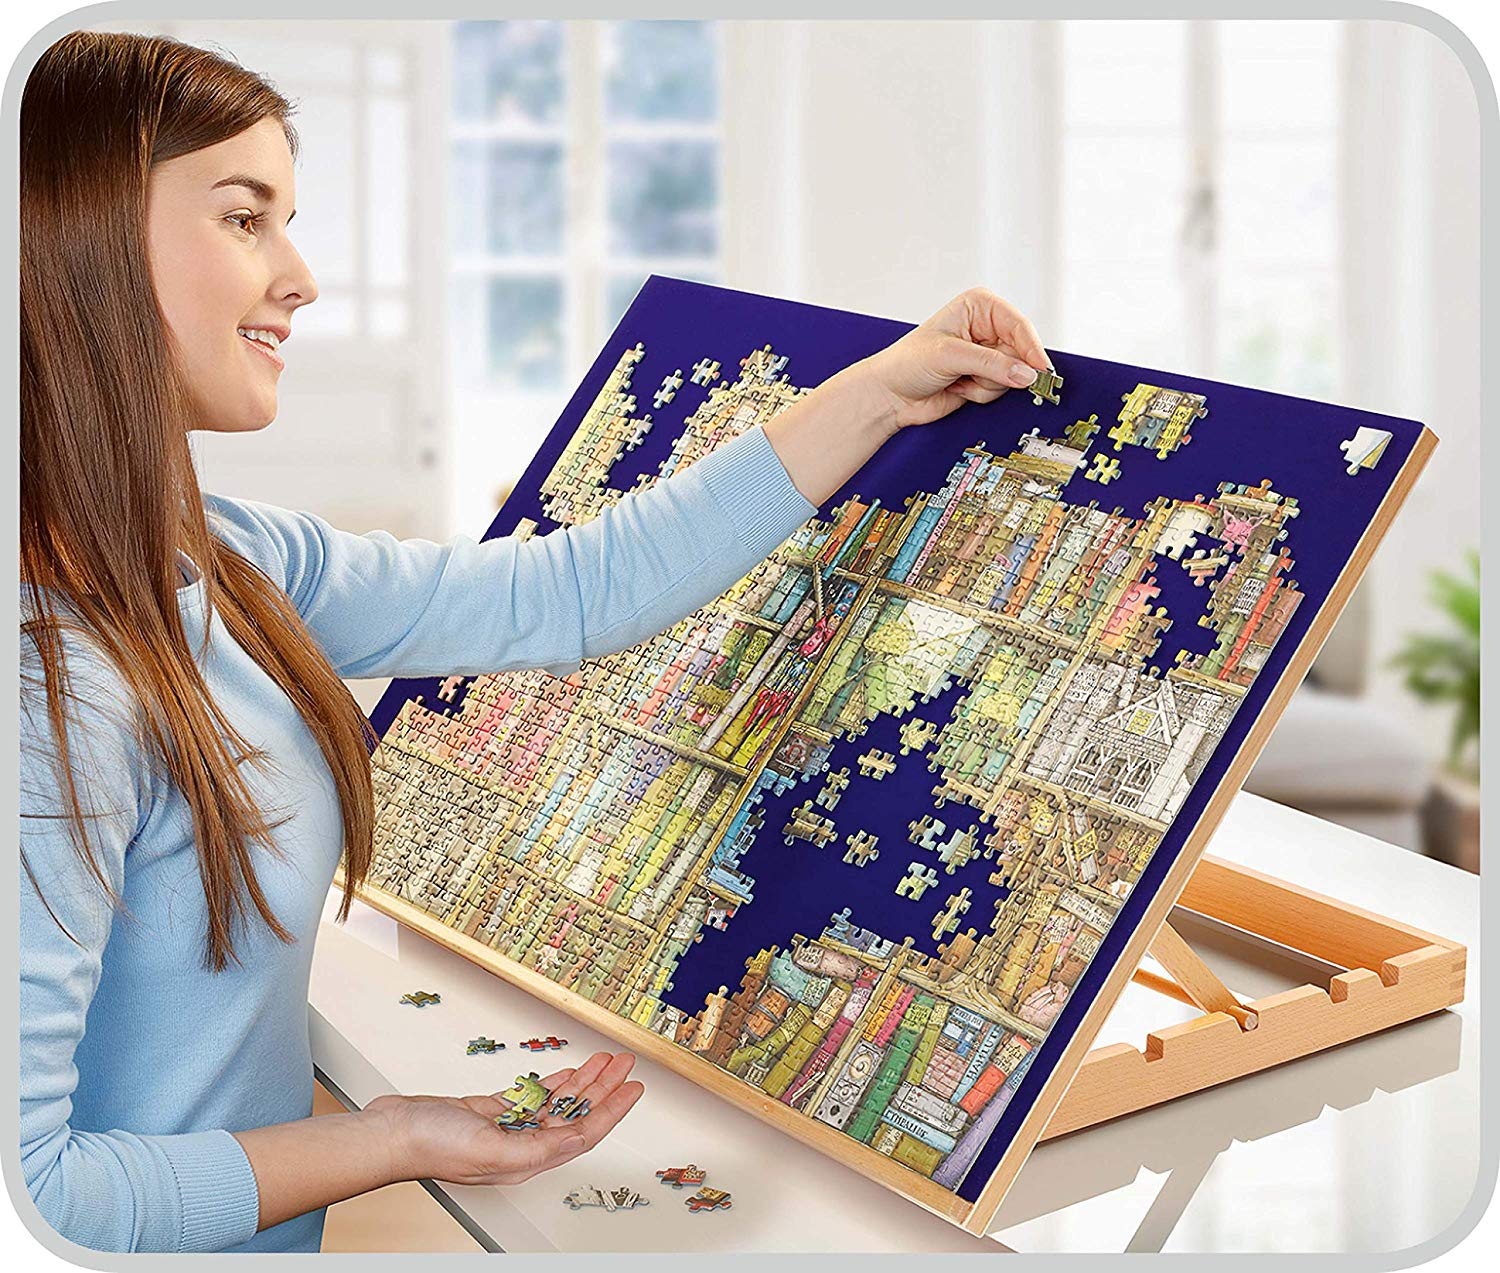 http://data.my-puzzle.fr/ravensburger.5/puzzle-board-puzzle-1000-pieces.75125-1.fs.jpg